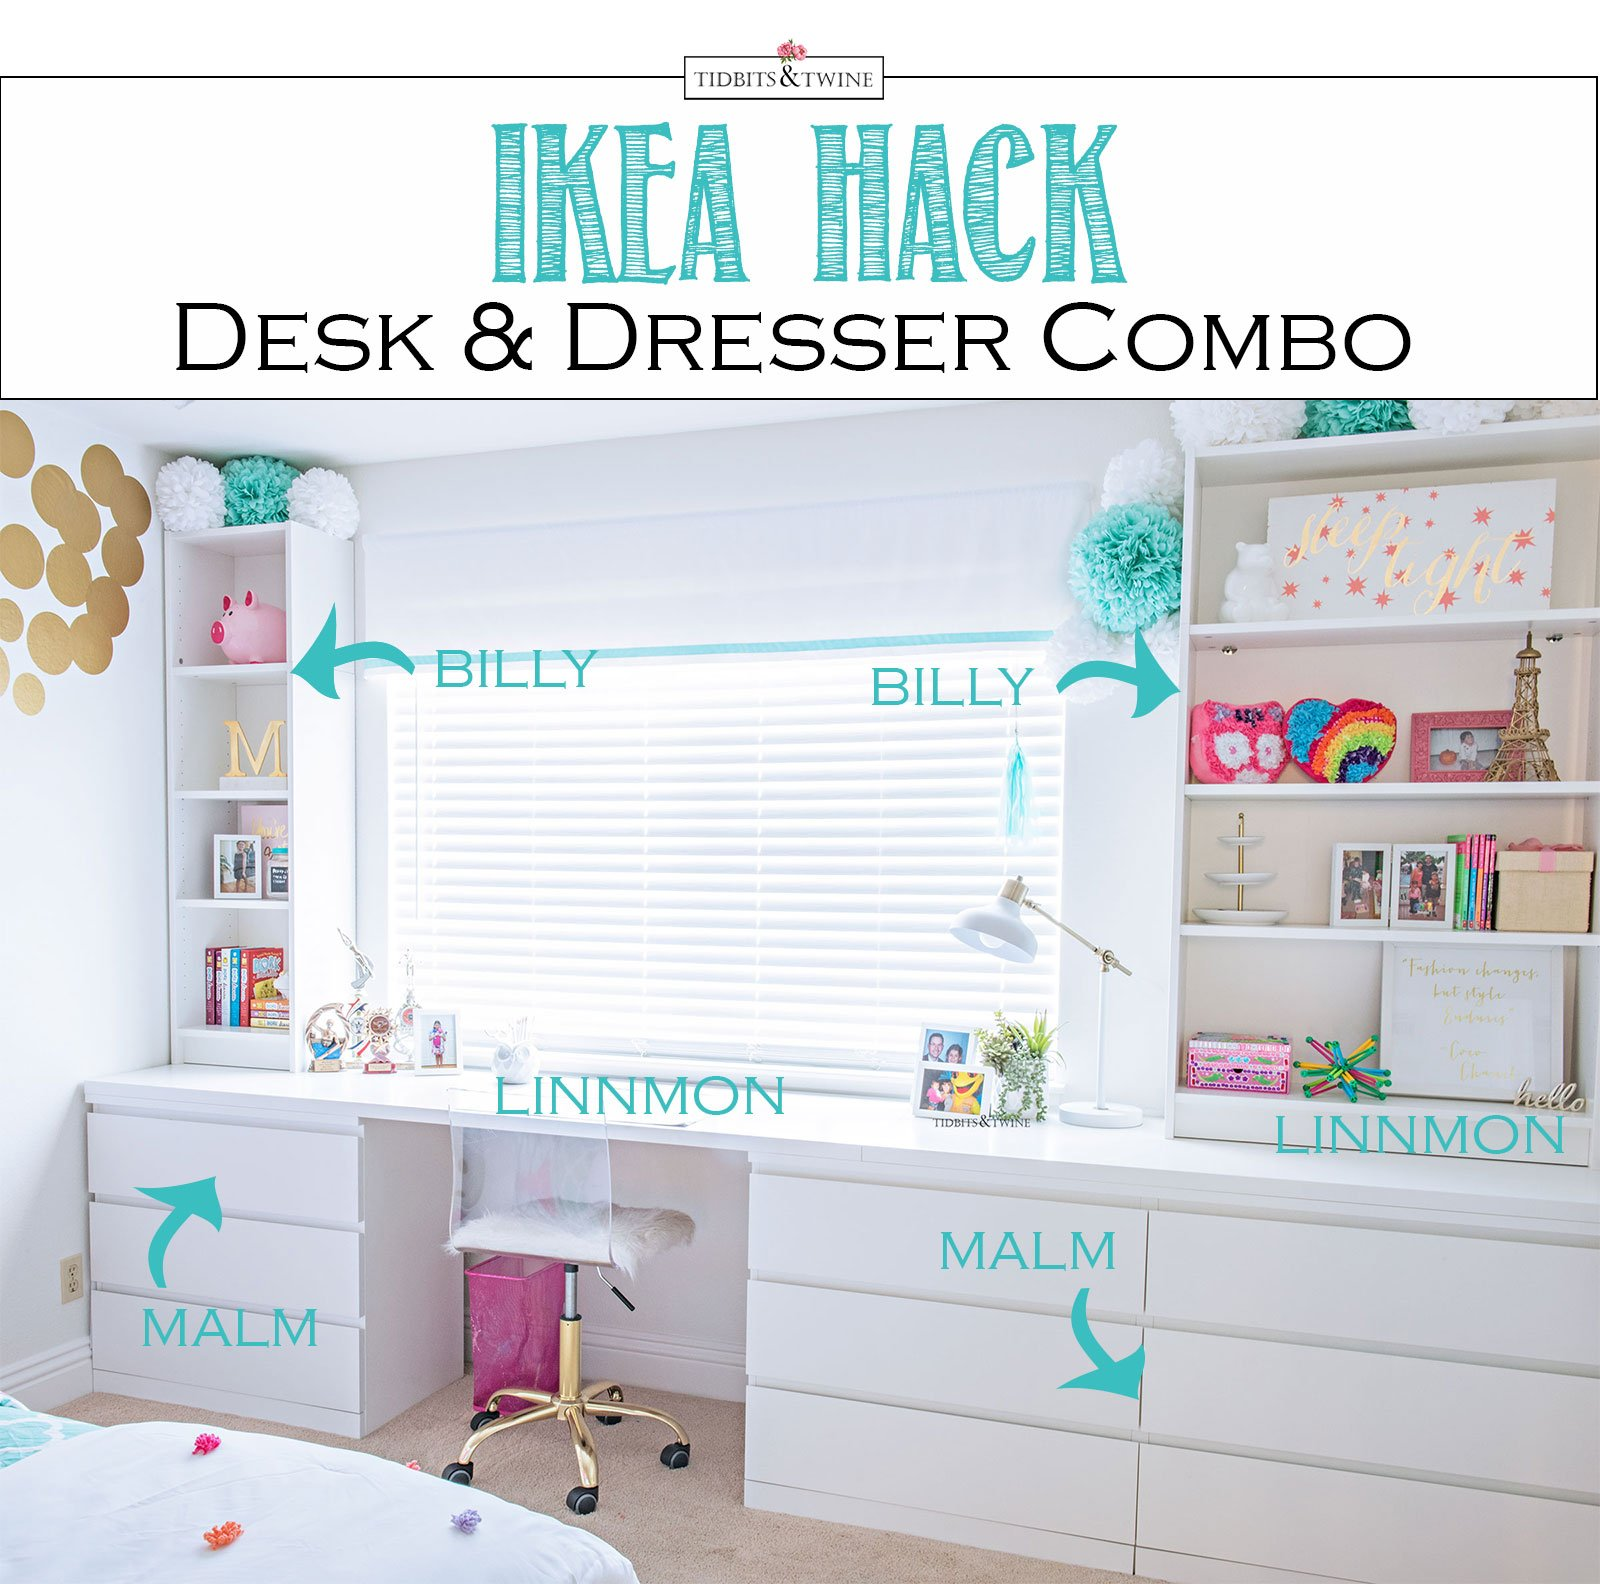 ikea hack custom desk dresser combo tidbits twine. Black Bedroom Furniture Sets. Home Design Ideas